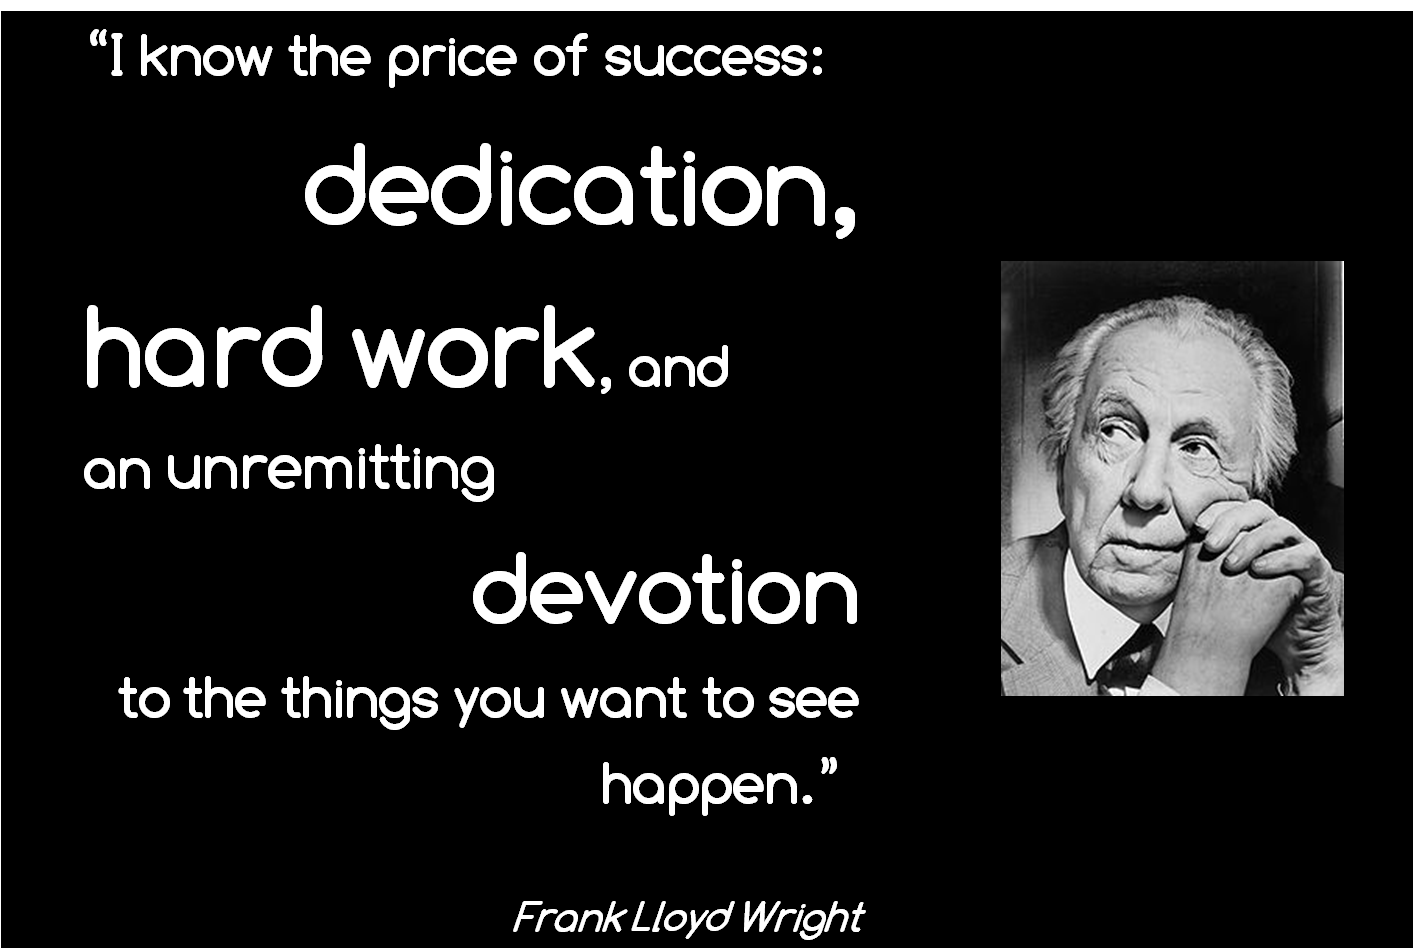 Frank Lloyd Wright Quotes Quotes From Great Chicagoans To Keep You Inspired  Brill Street